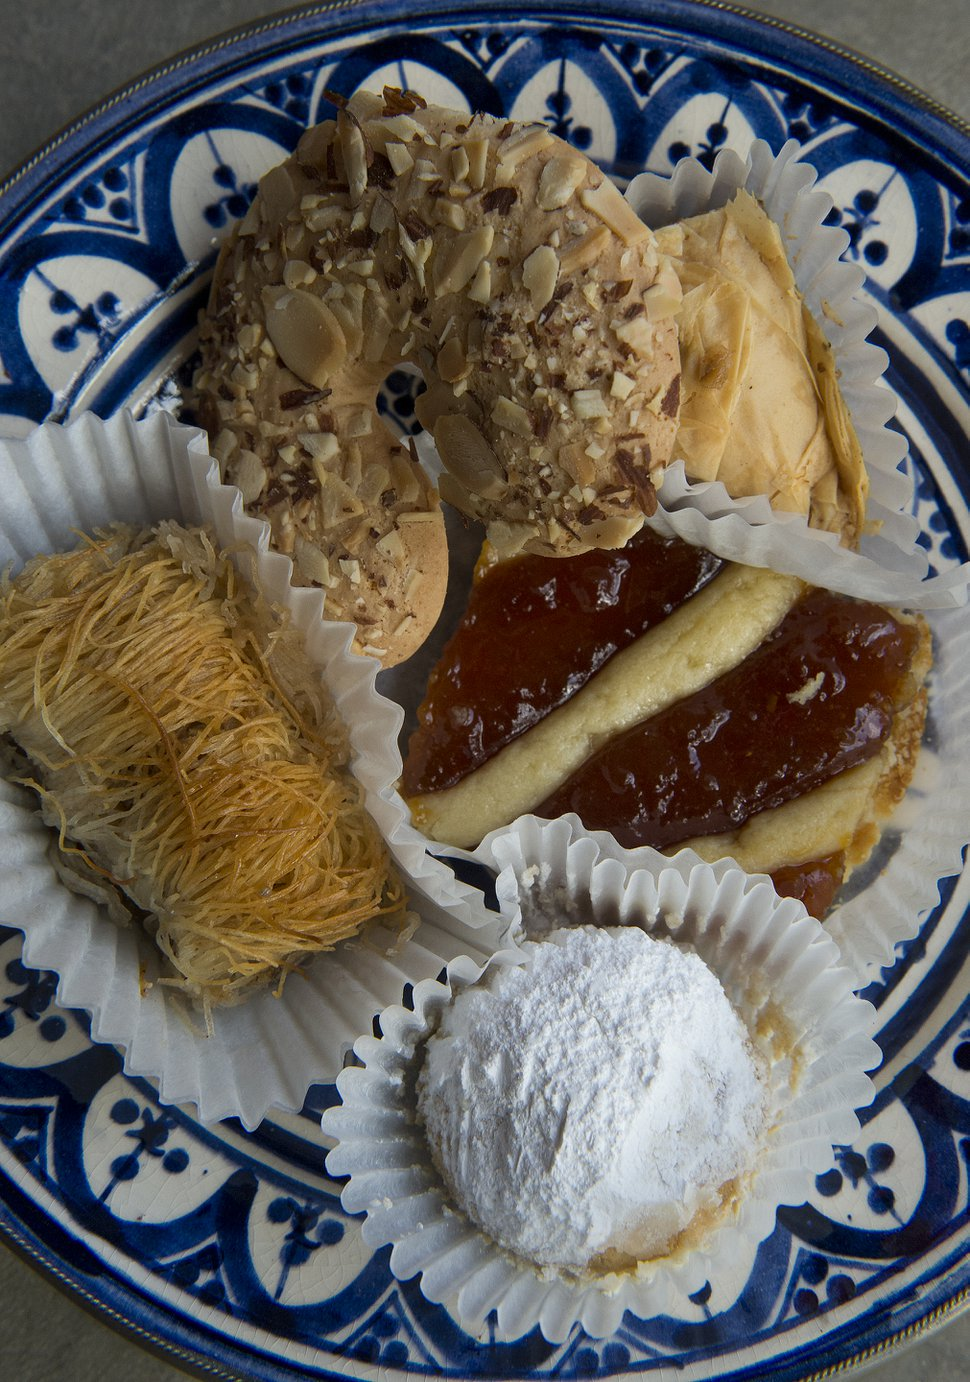 (Leah Hogsten | Tribune file photo) A plate of baklava, kataifi, kourambiedes and pasta flora at the 42nd annual Greek Festival. With this year's festival canceled because of COVID-19, organizers are holding a one-day pastry event at Holy Trinity Cathedral Greek Orthodox Church on Saturday, Oct. 17, 2020.